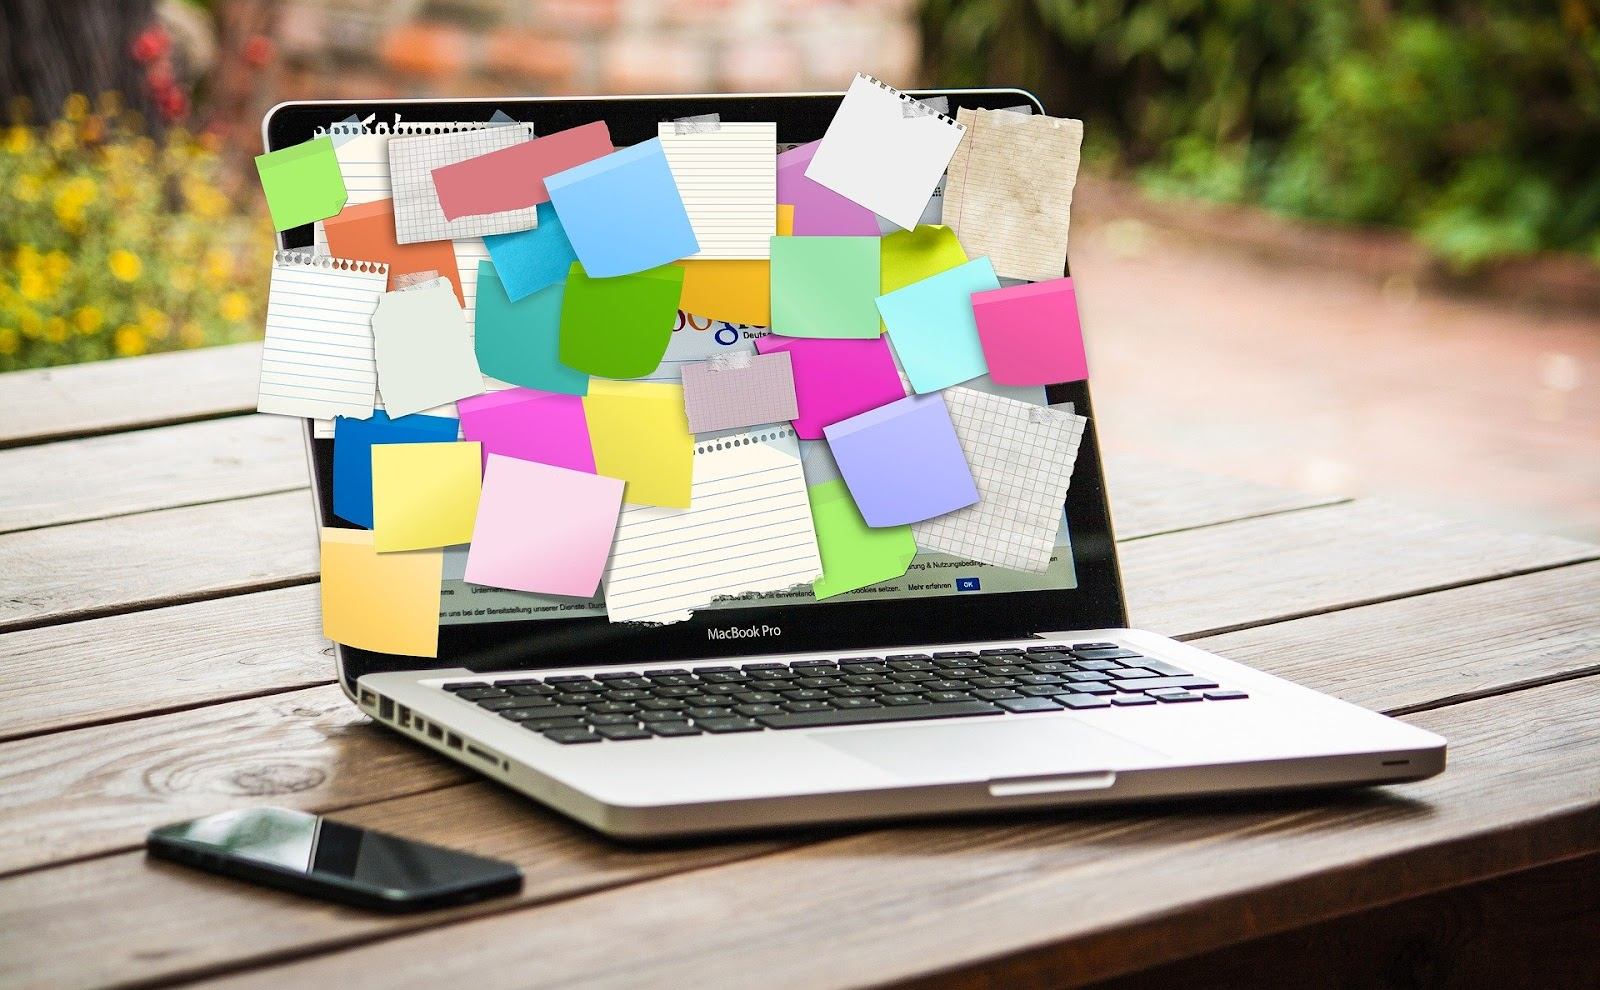 Laptop with post-it notes Bar exam study